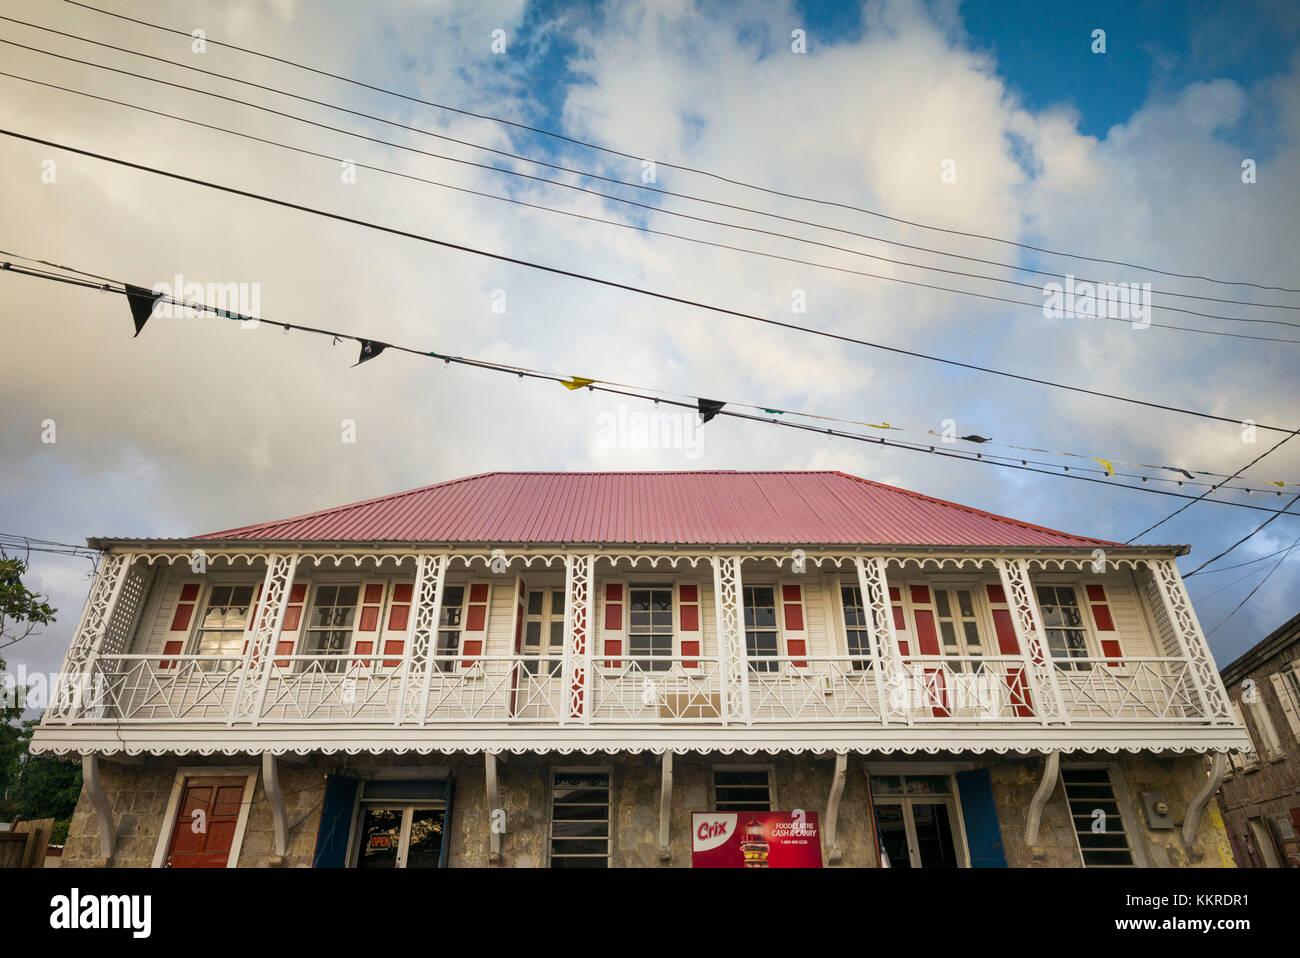 St. Kitts and Nevis, Nevis, Charlestown, town buidlings - Stock Image